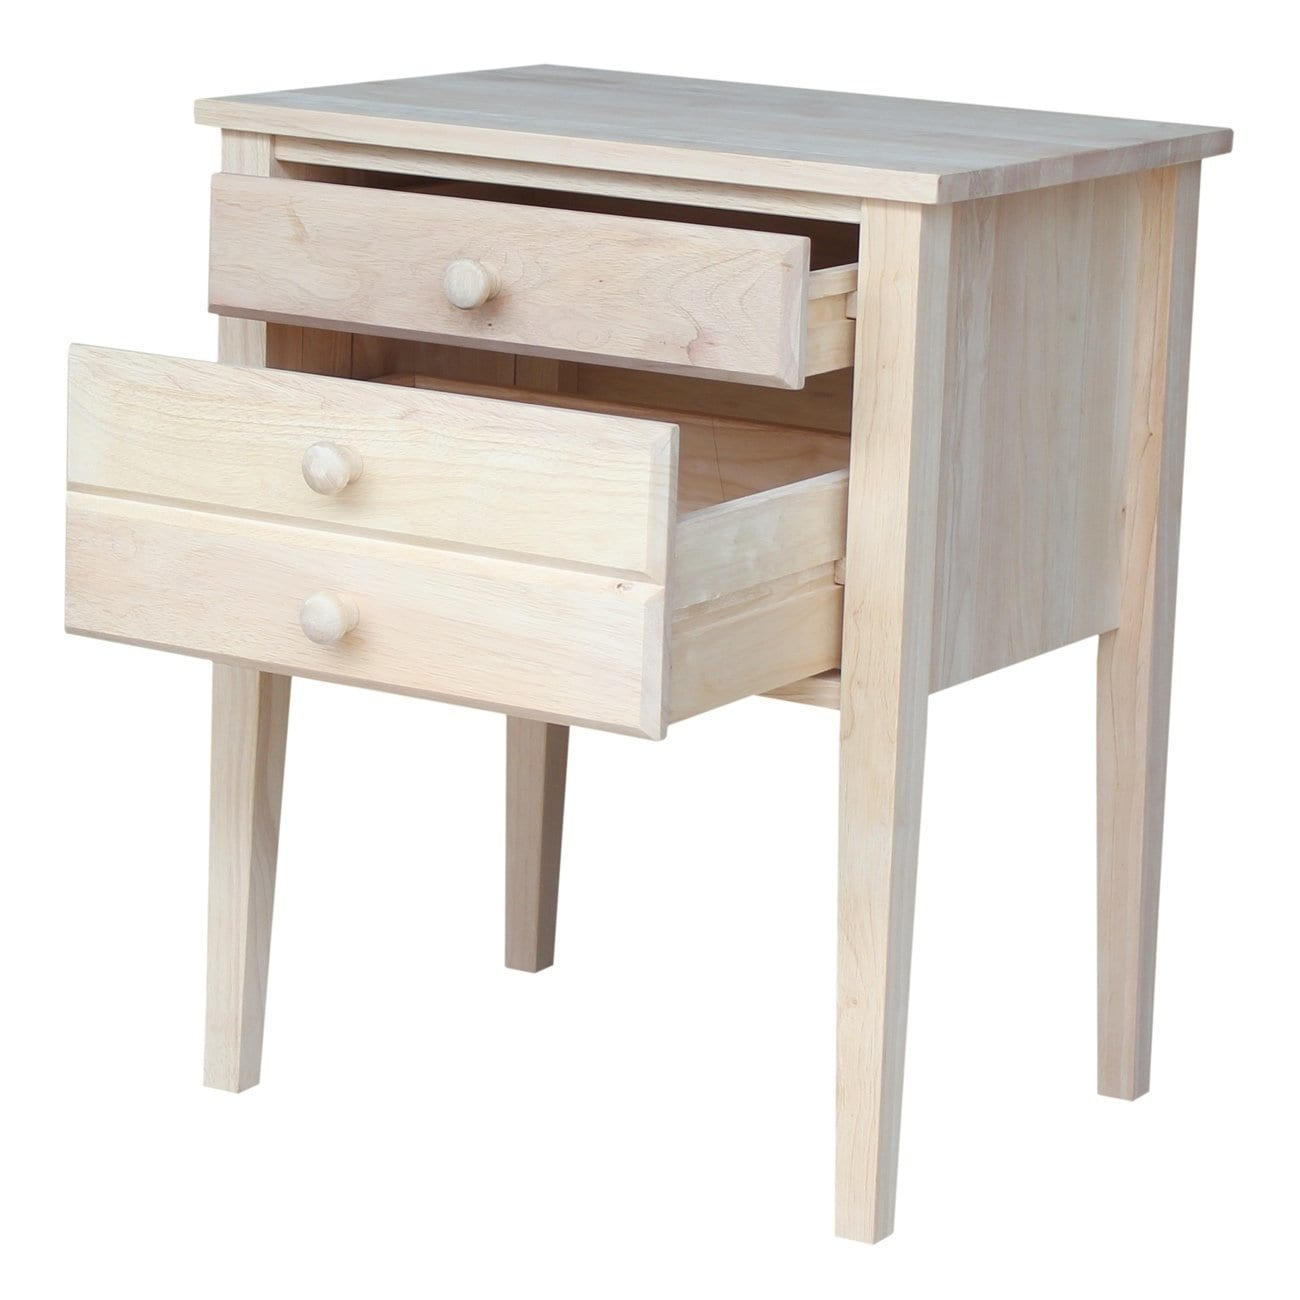 unfinished solid parawood drawer accent table free shipping today valley city furniture patio mississauga skinny runner painted console antique tiffany lamps small decorative